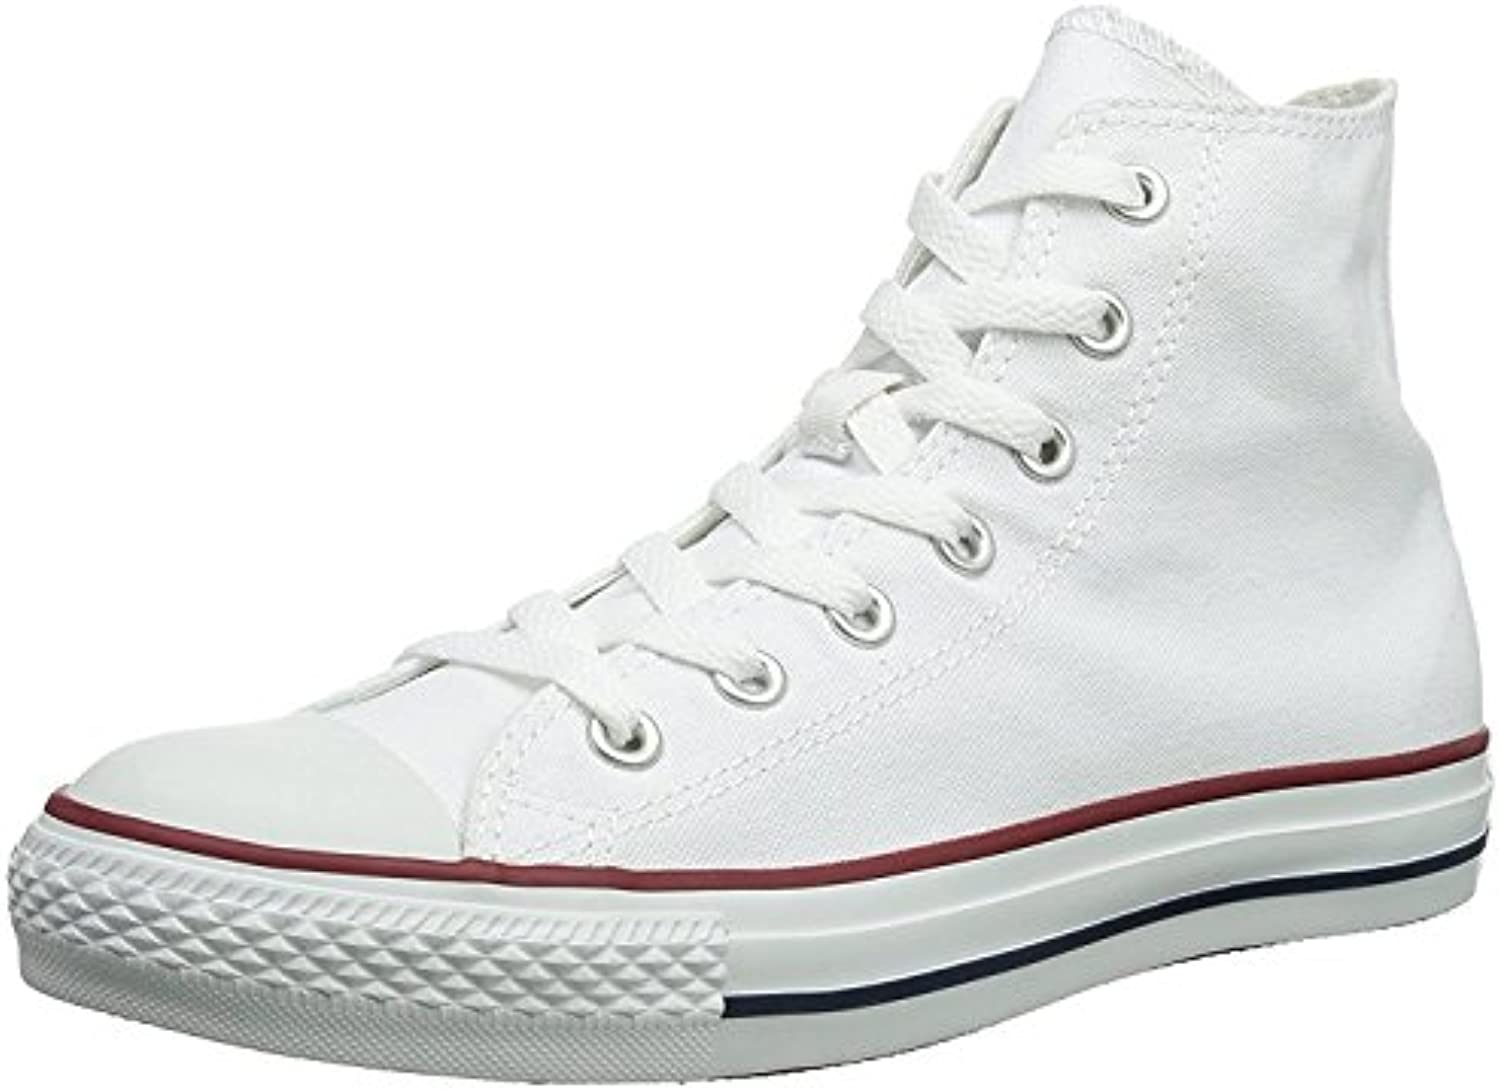 Converse Women's All Star Hi Top Optical White Shoes M7650